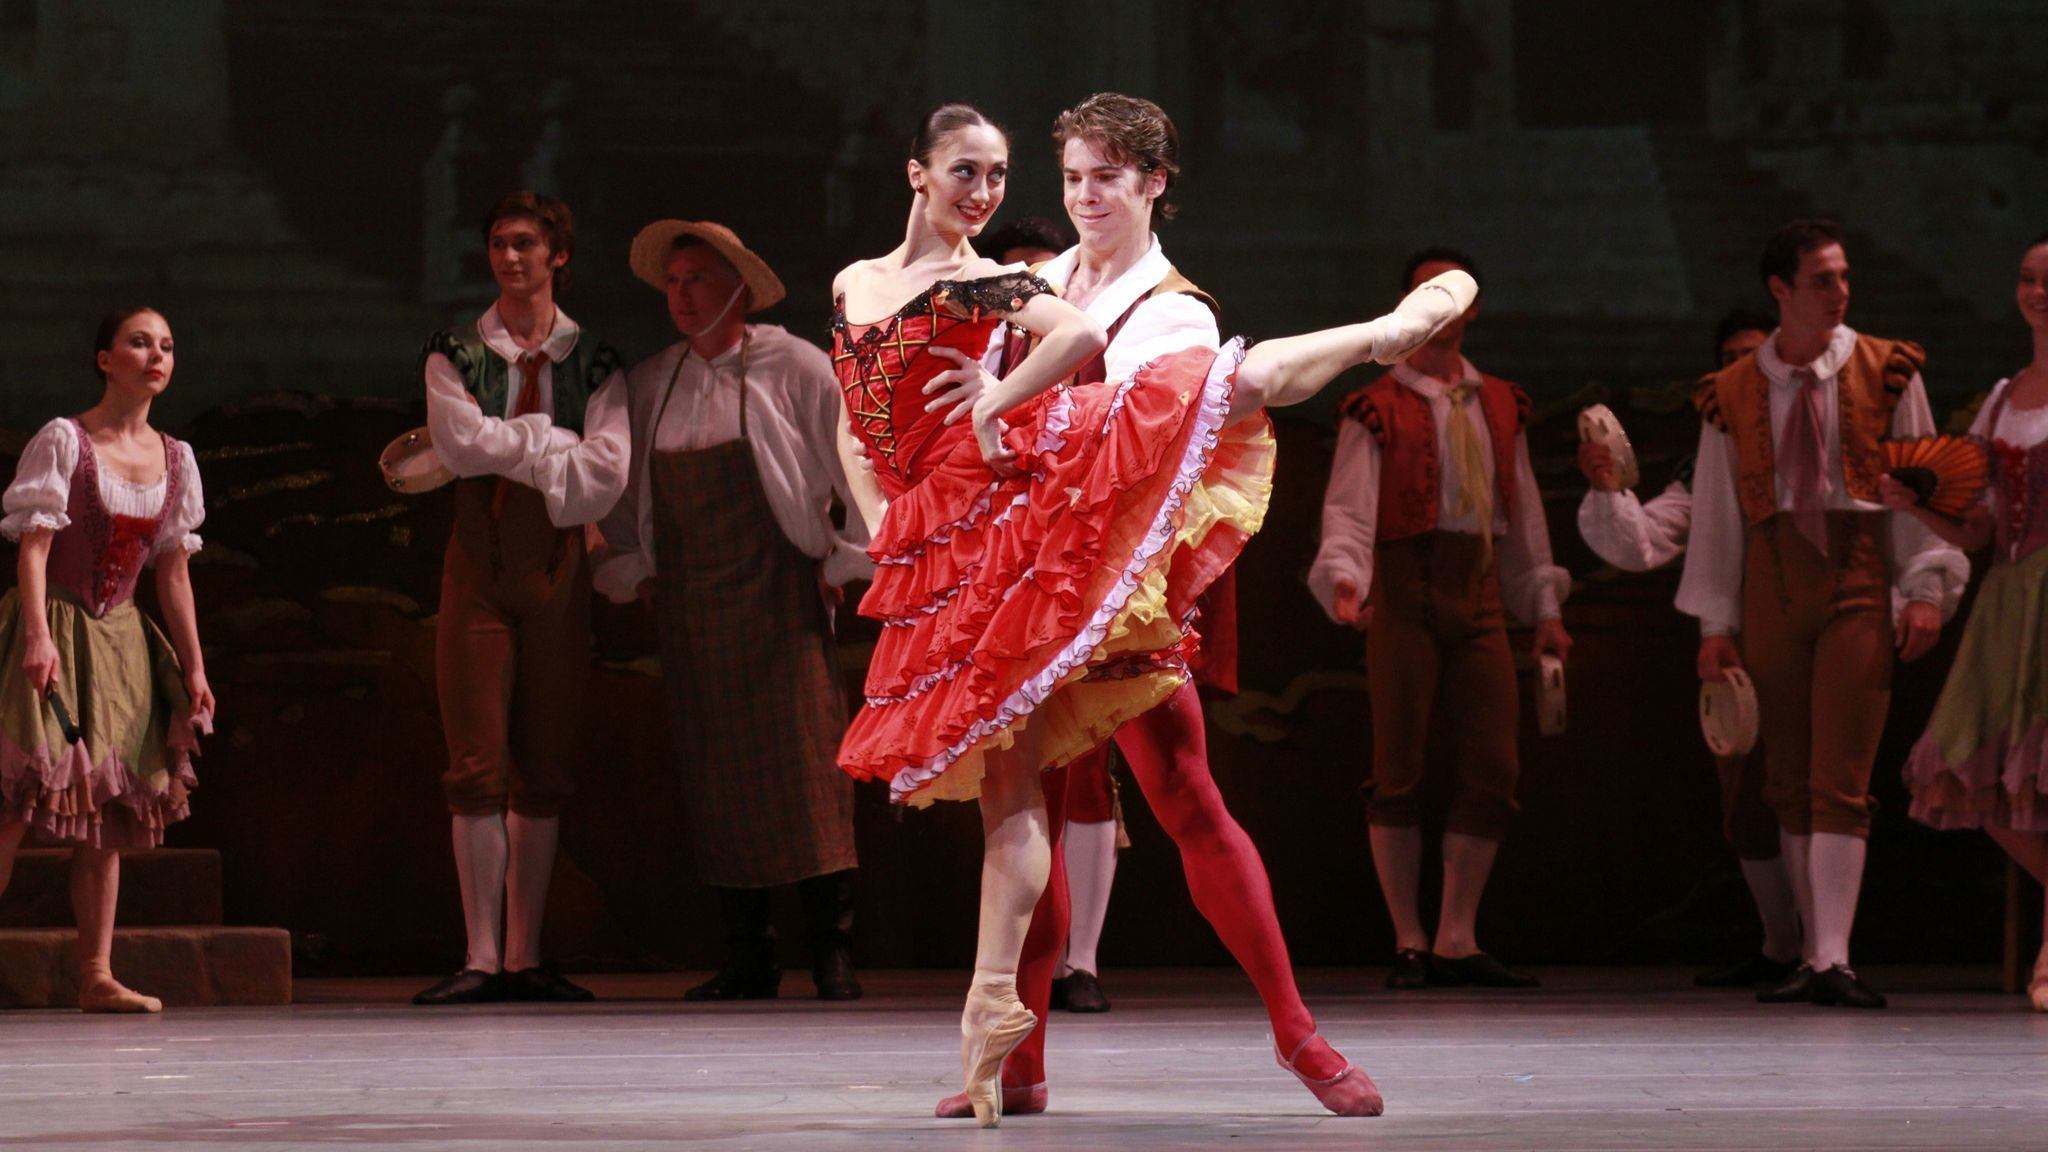 Joffrey Ballet announces 2019-20 season, with return of 'Don Quixote' and Chicago premiere of 'Jane Eyre'